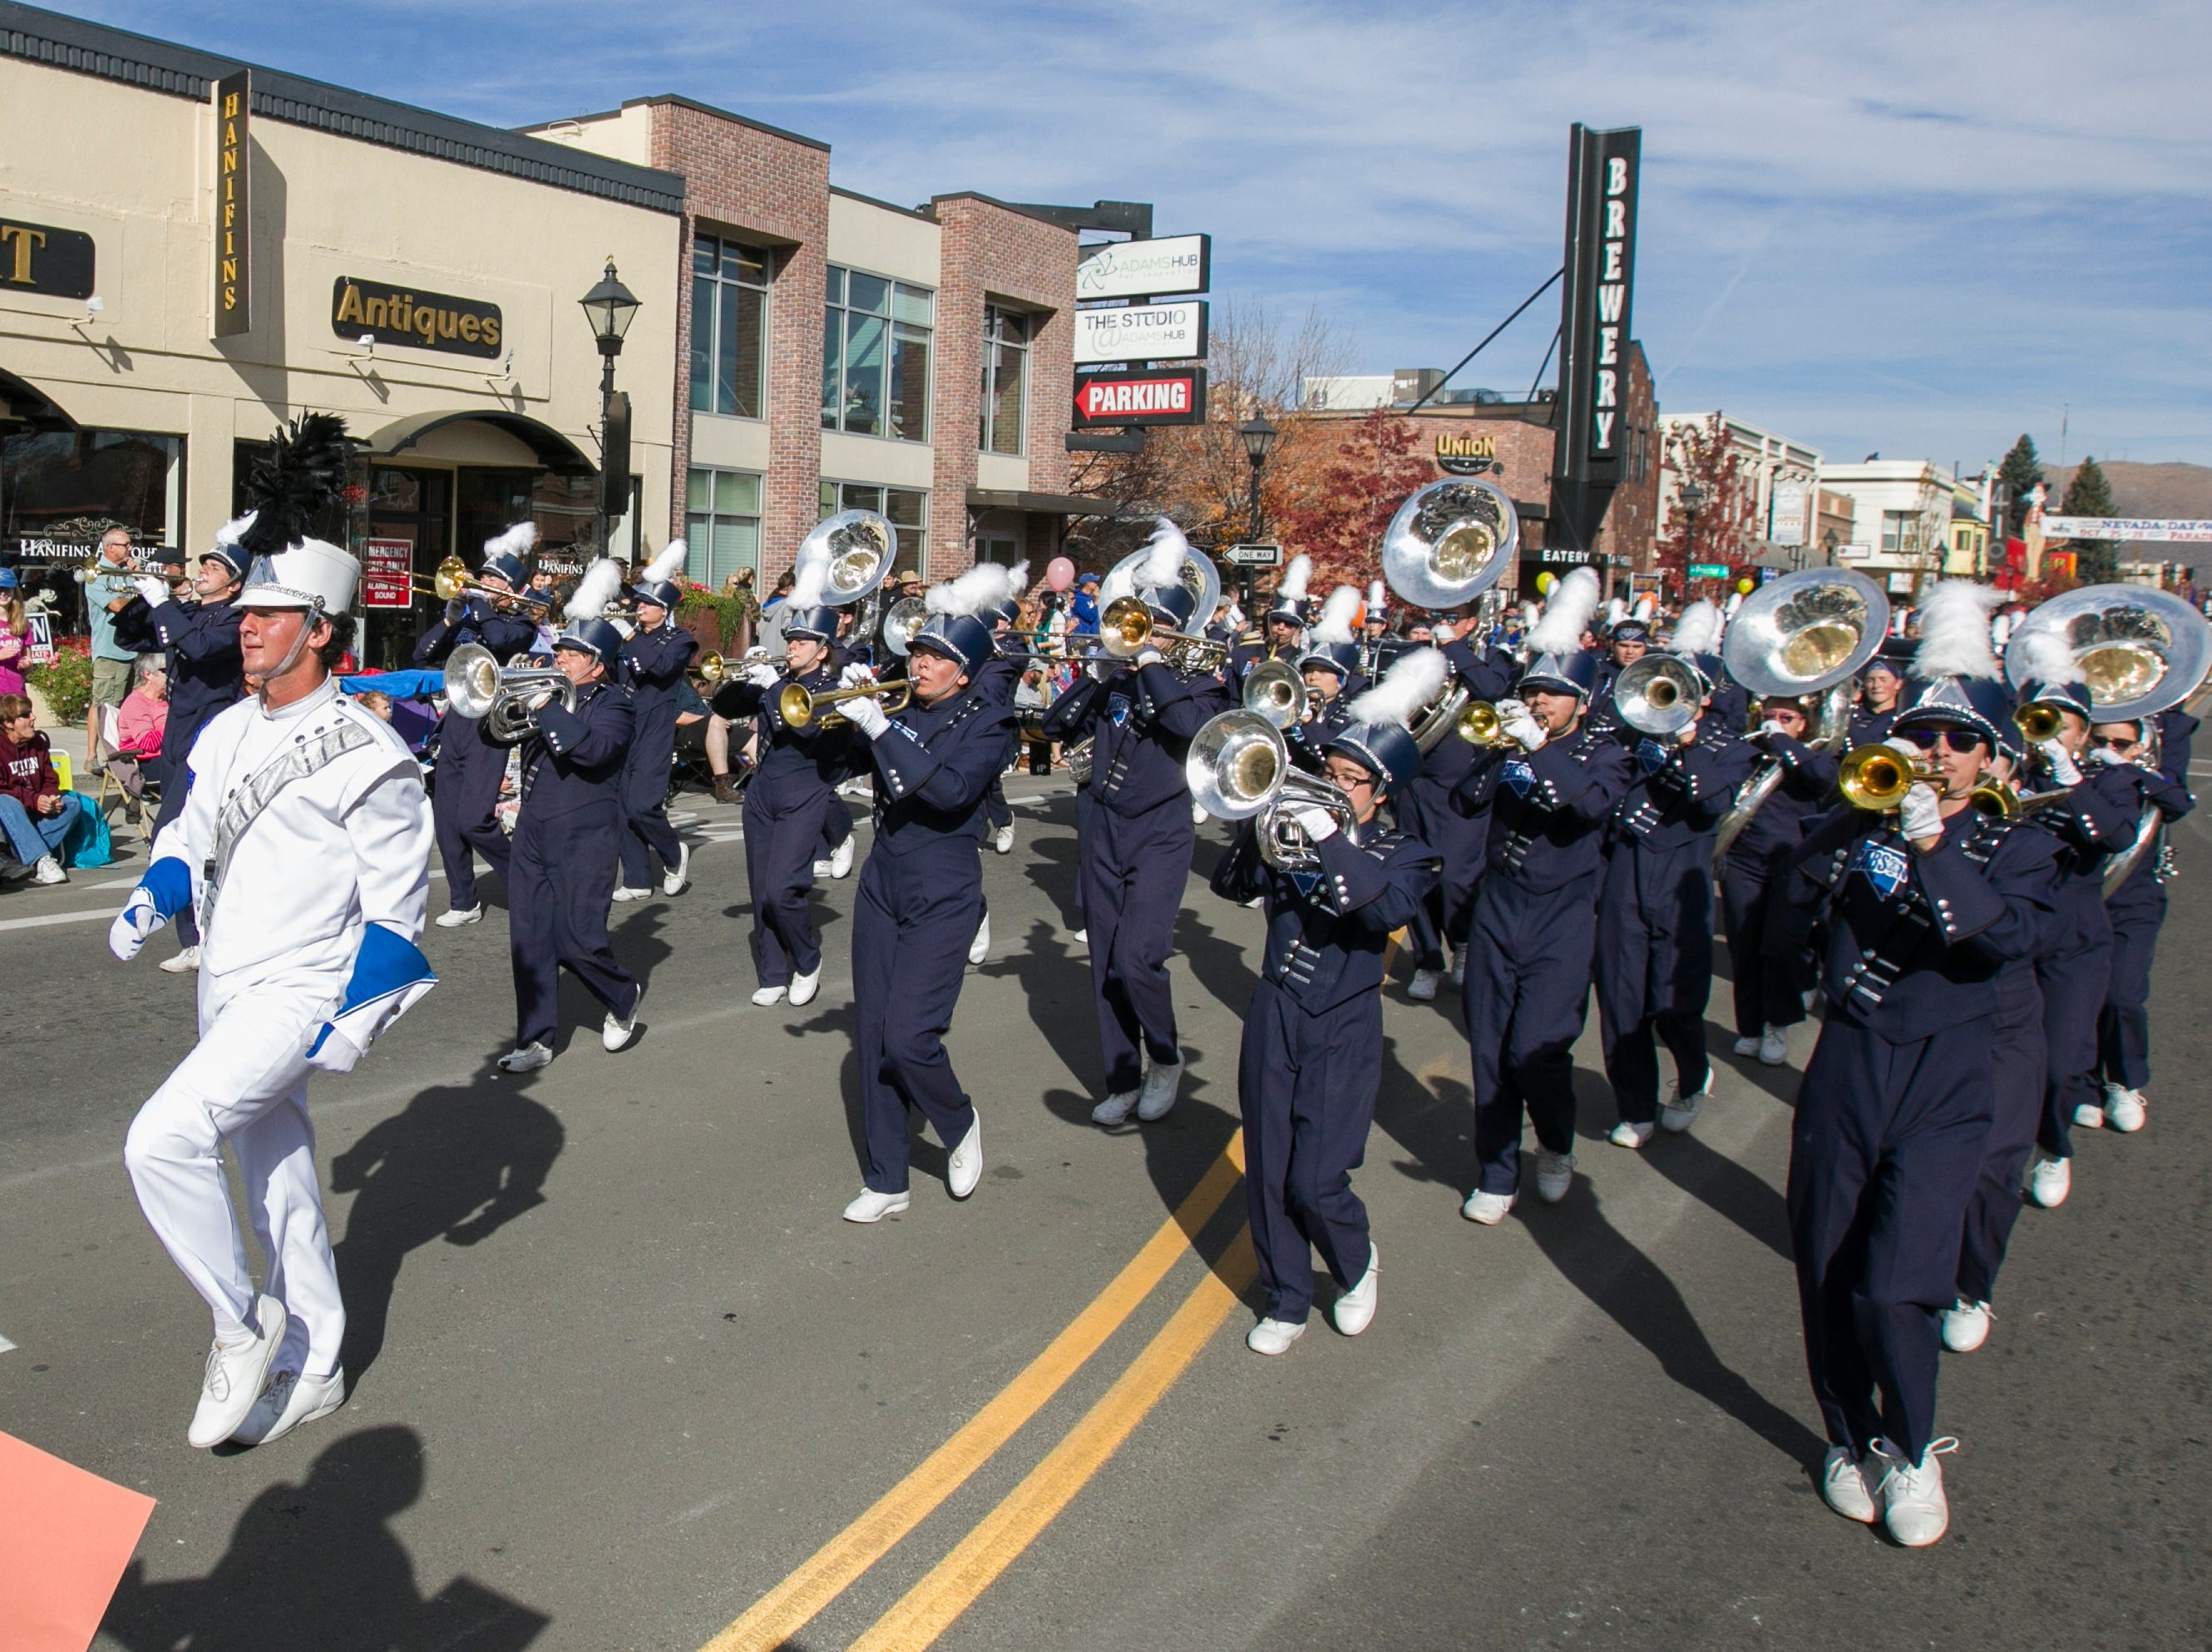 Photos from the Nevada Day parade in Carson City on Saturday